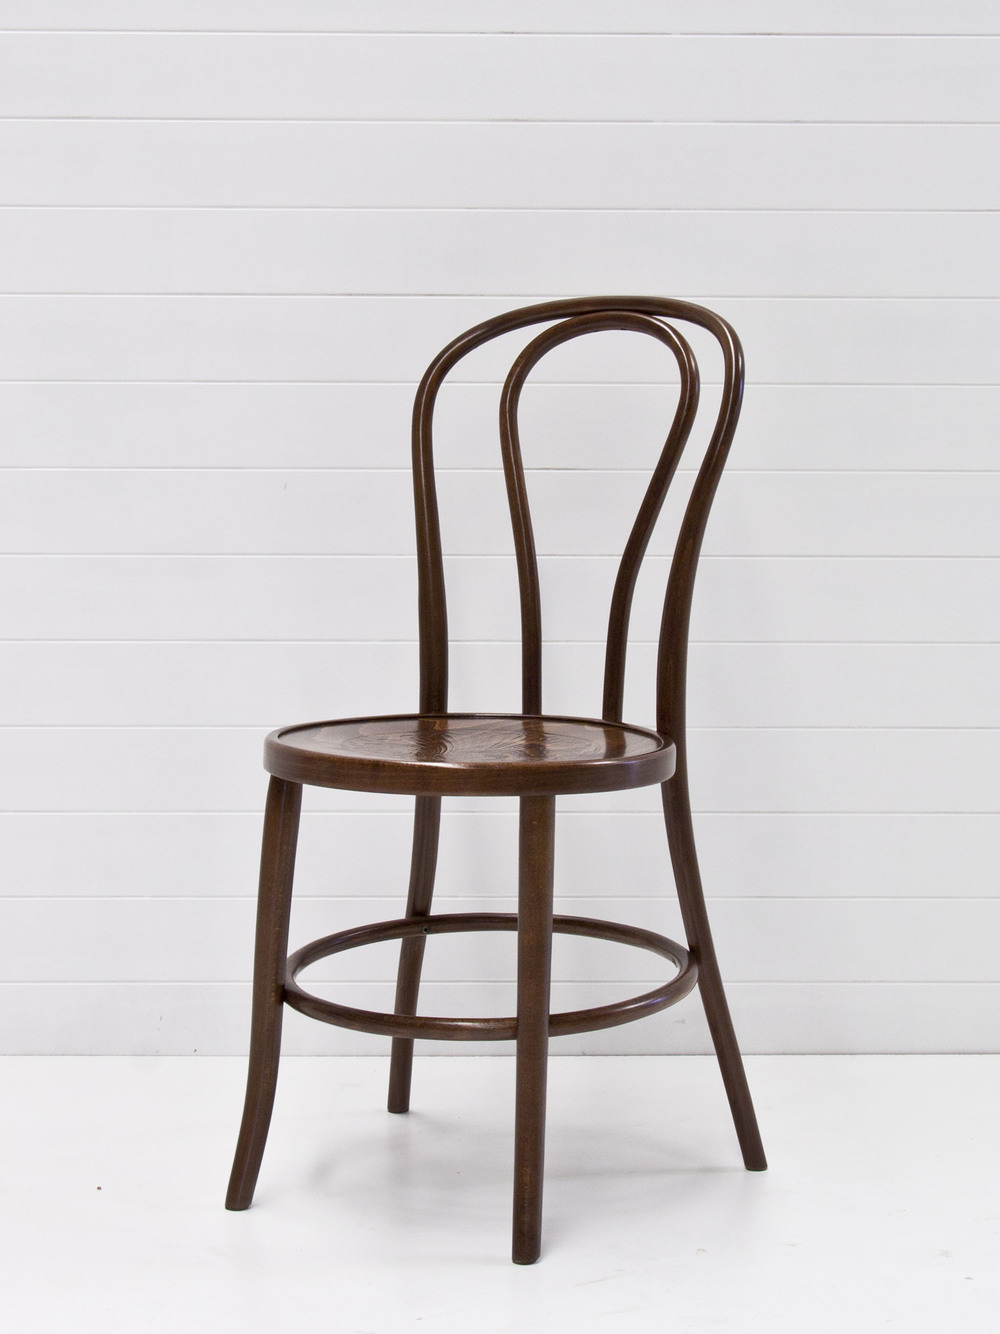 Walnut bentwood chair.jpg